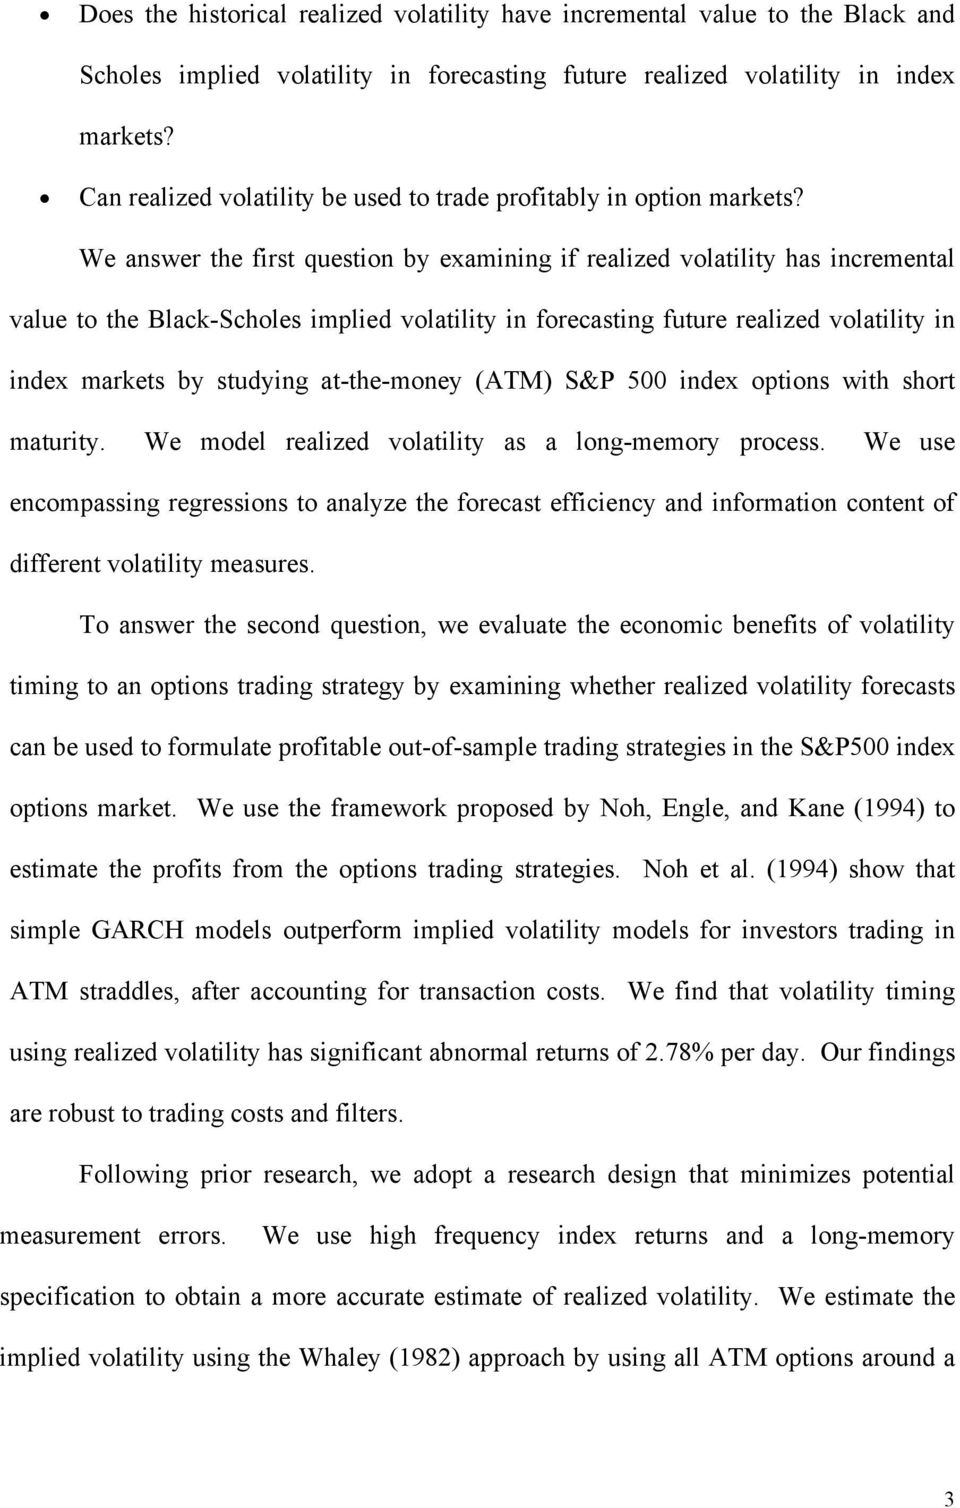 We answer the first question by examining if realized volatility has incremental value to the Black-Scholes implied volatility in forecasting future realized volatility in index markets by studying